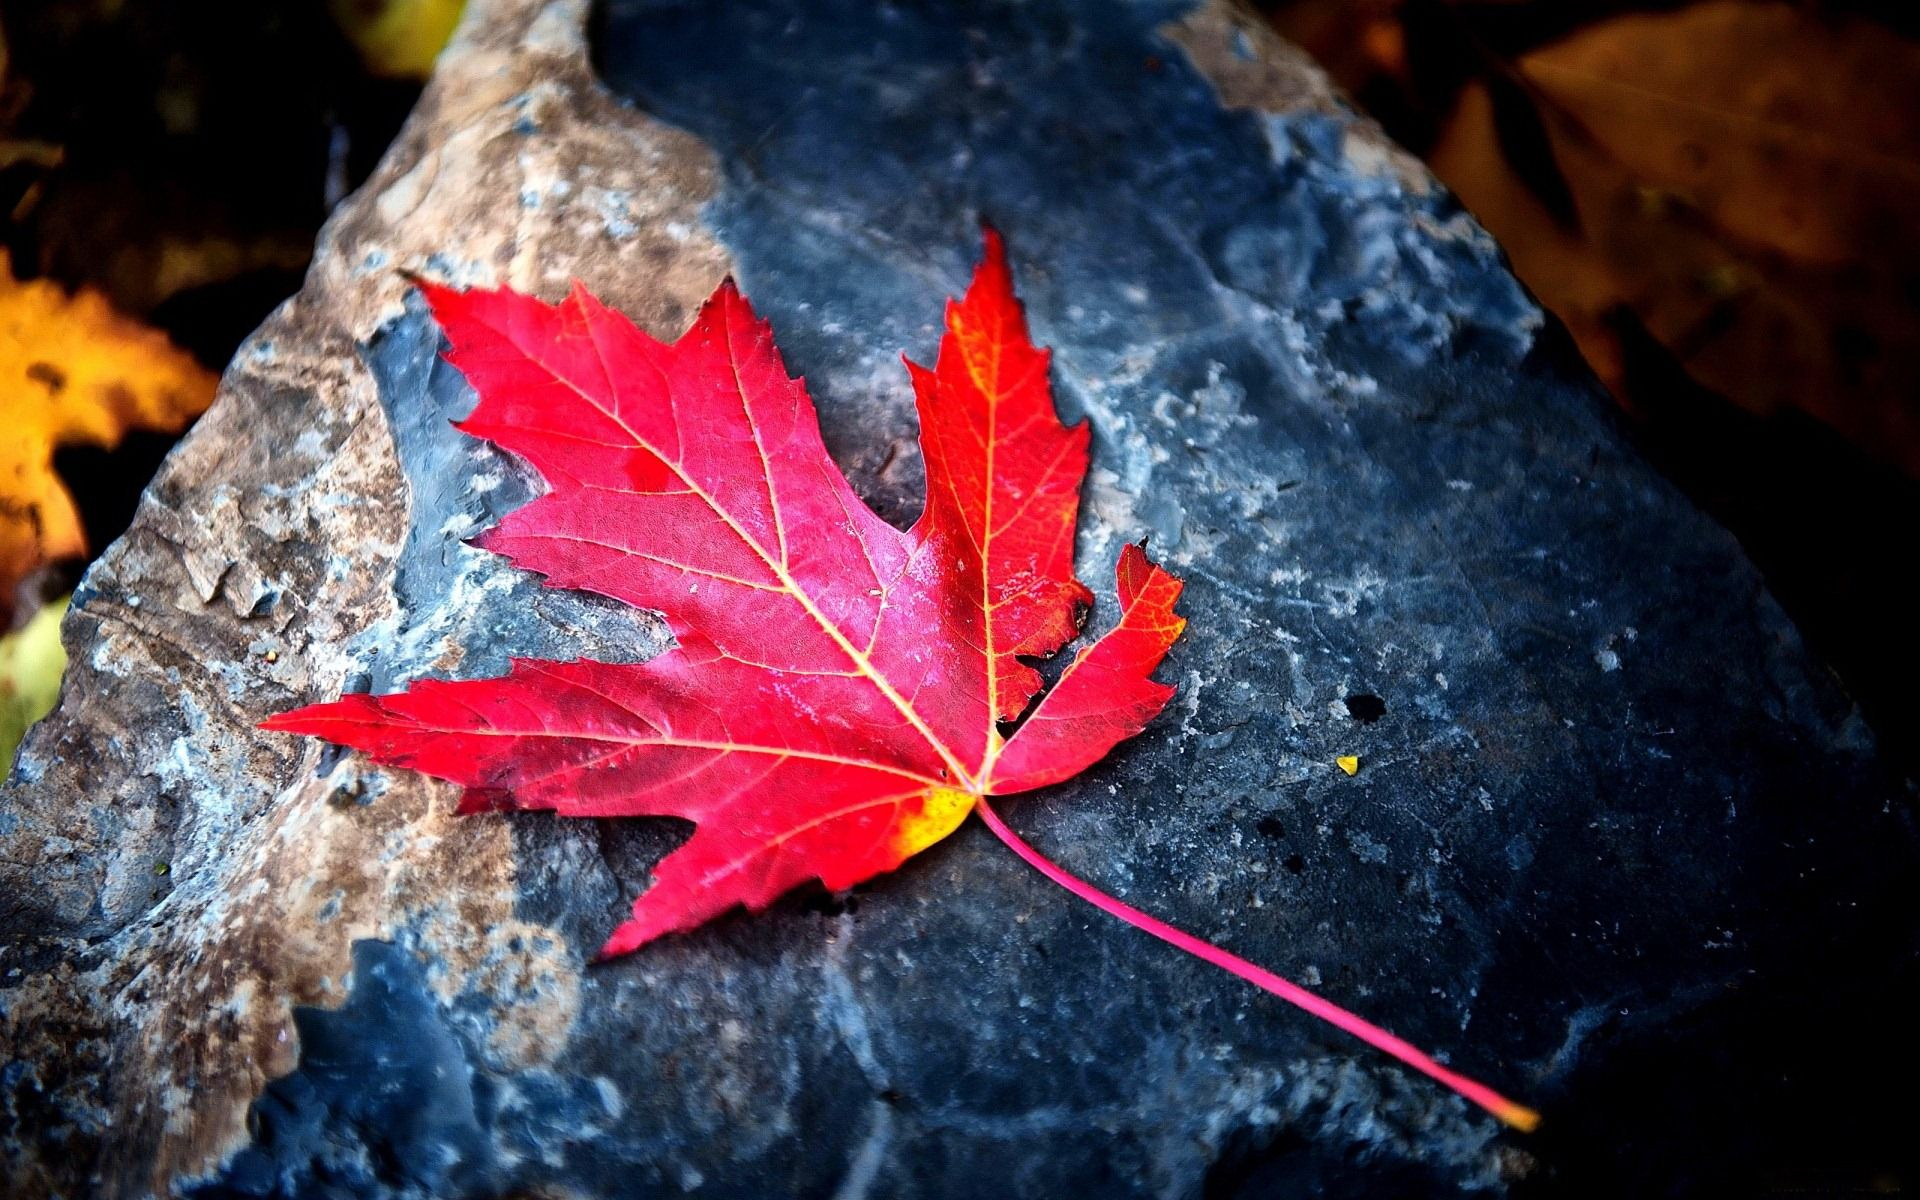 Fantastically colorful leaf, more such nice quality hd